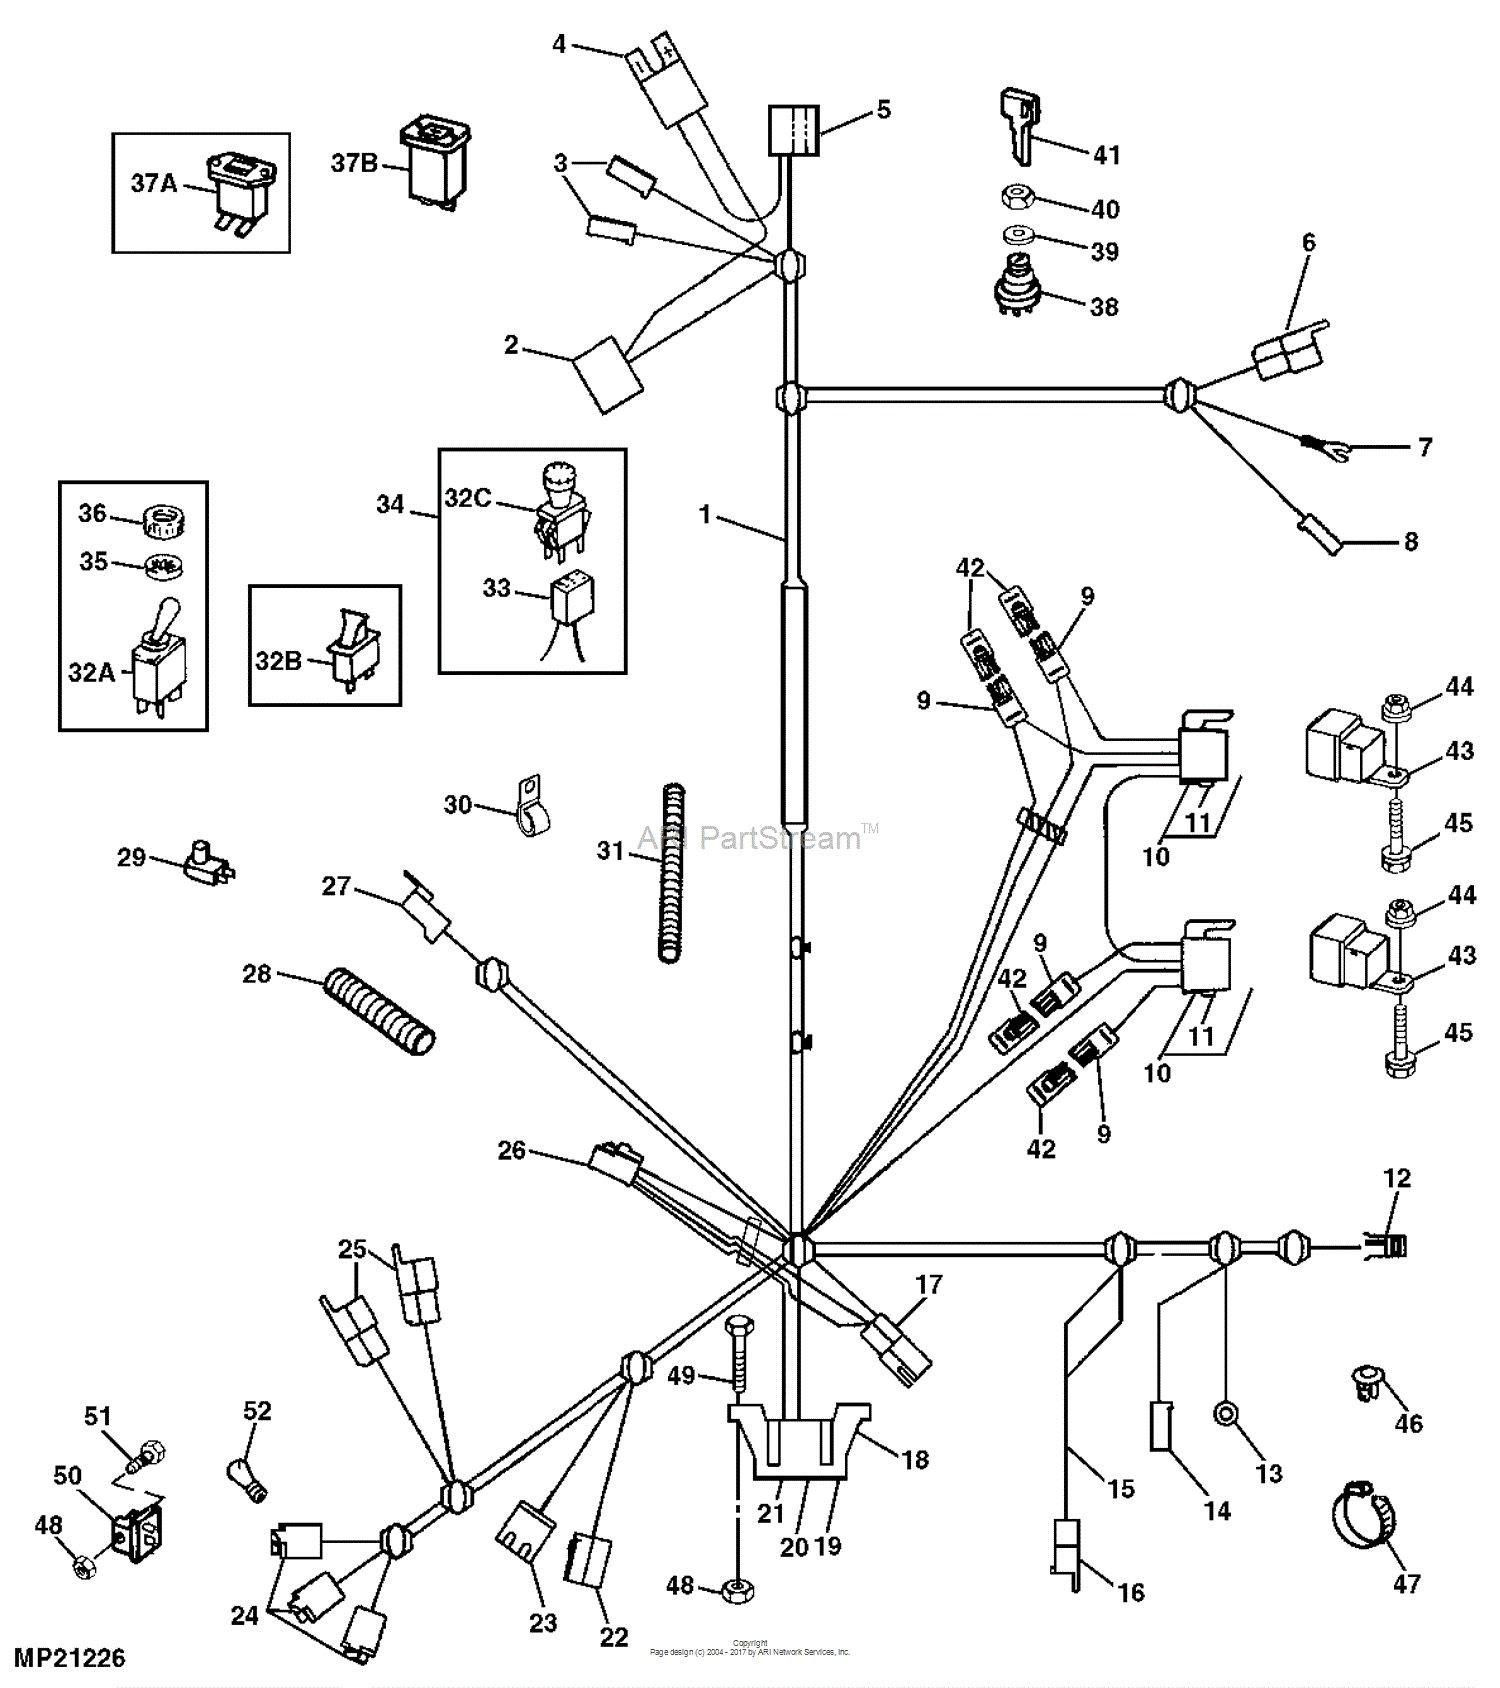 John Deere 410 Wiring Diagram | Wiring Schematic Diagram - 7 ... on john deere 510d backhoe, john deere backhoe wiring diagram, john deere backhoe controls diagram, john deere hydraulic fittings, john deere hydraulic diagram, john deere 310b backhoe parts, backhoe hydraulics diagram, john deere 400 backhoe parts, john deere hydraulic schematics, john deere 410c backhoe, john deere 6400 wiring-diagram, john deere injection pump diagram, john deere backhoe loader, john deere 310c backhoe, john deere 10a backhoe specs, john deere ignition wiring diagram, john deere 300b backhoe parts, john deere 410b backhoe, john deere 310 backhoe parts,